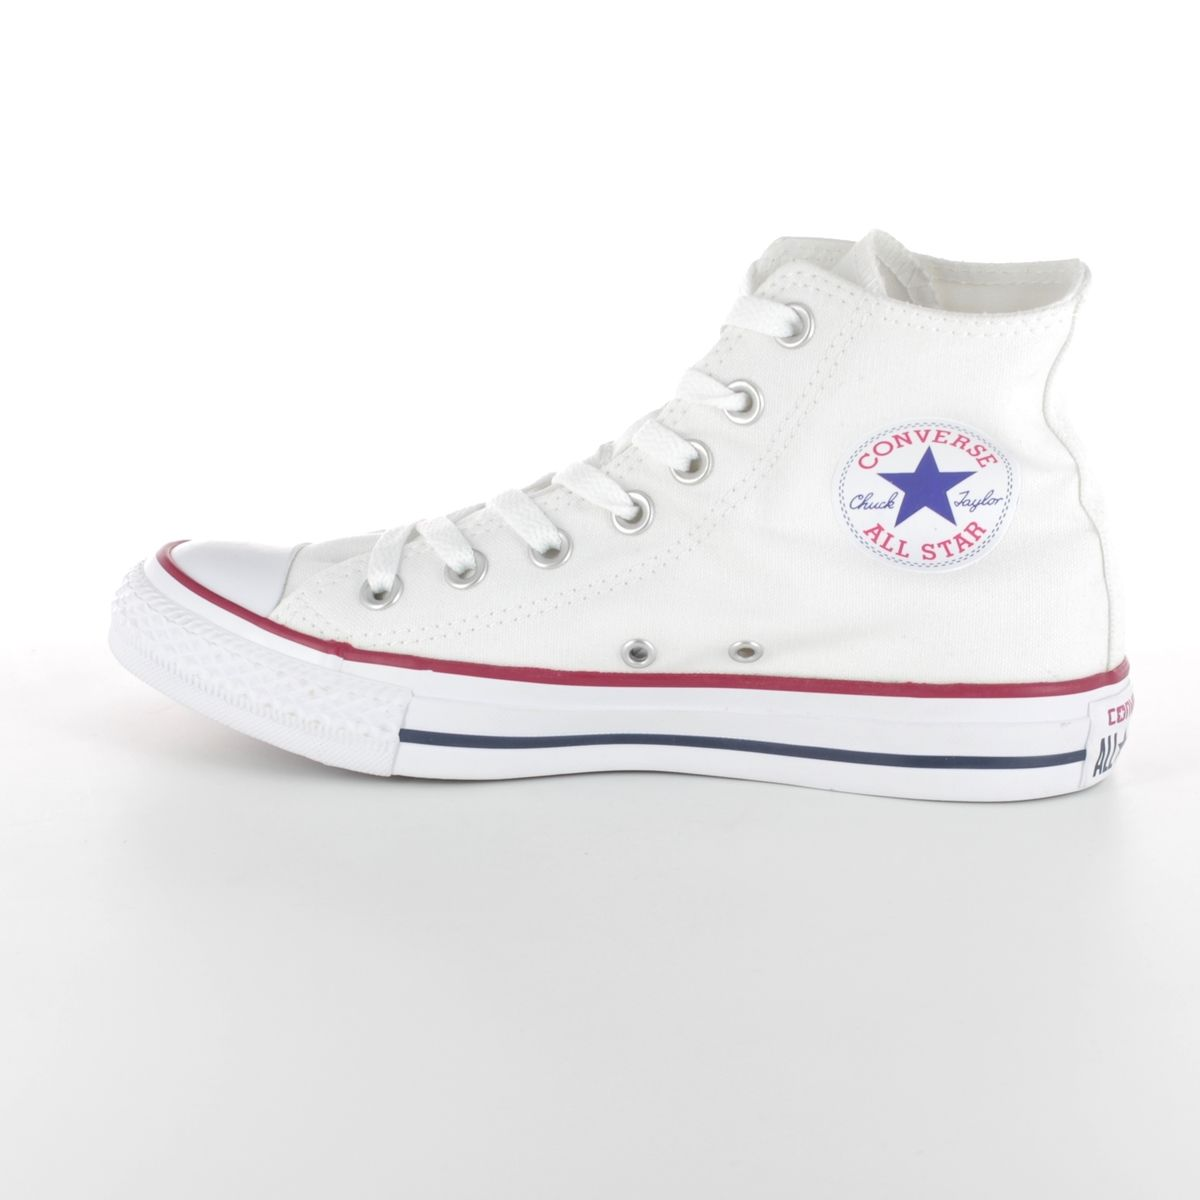 low priced 4d988 36c2a Converse Trainers - White - M7650C All Star HI Top Optical White